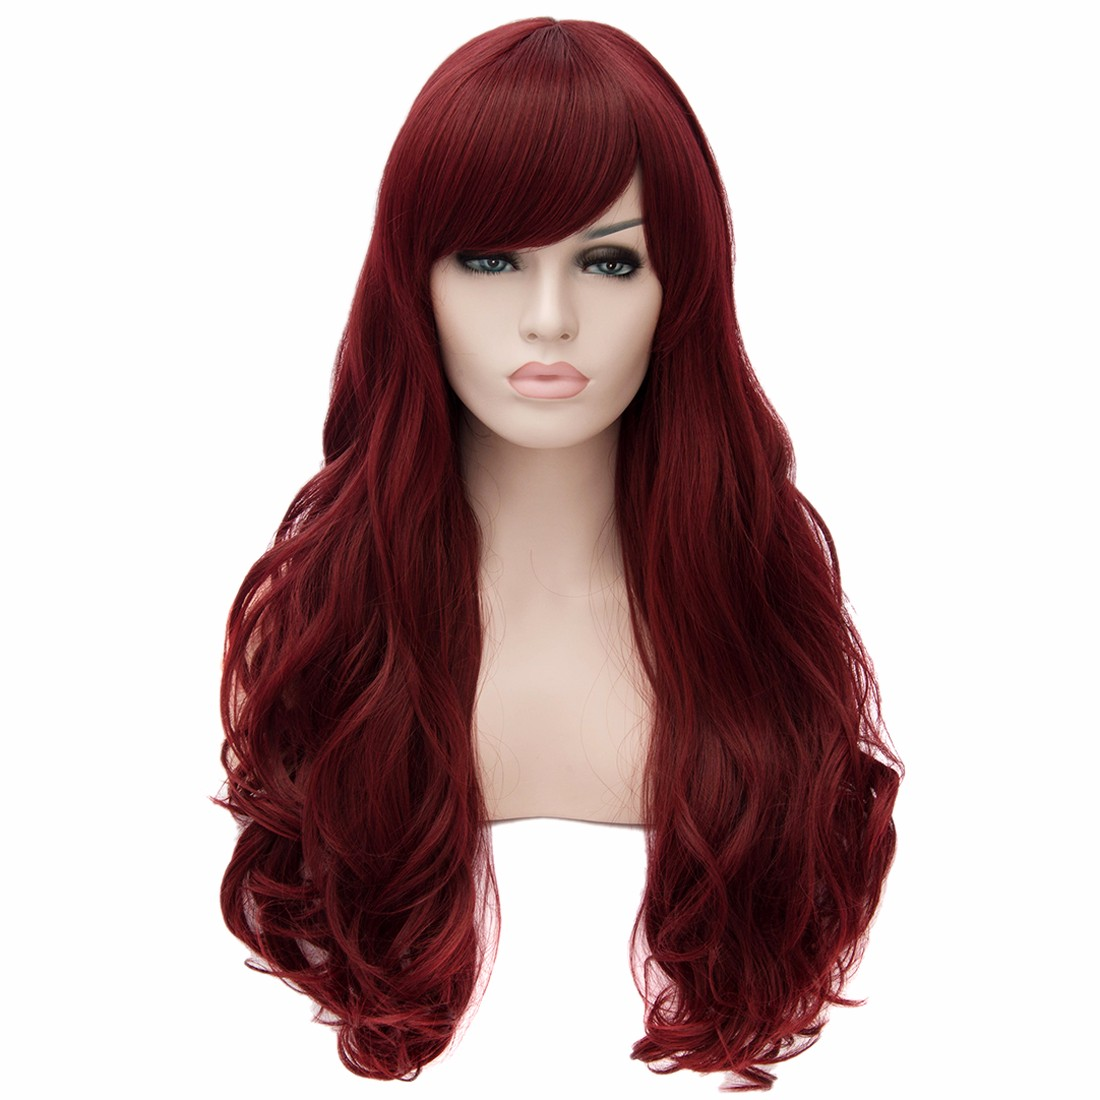 New Womens Long Curly Wavy Full Wigs Party Hair Cosplay Sexy Fashion Costume Wig